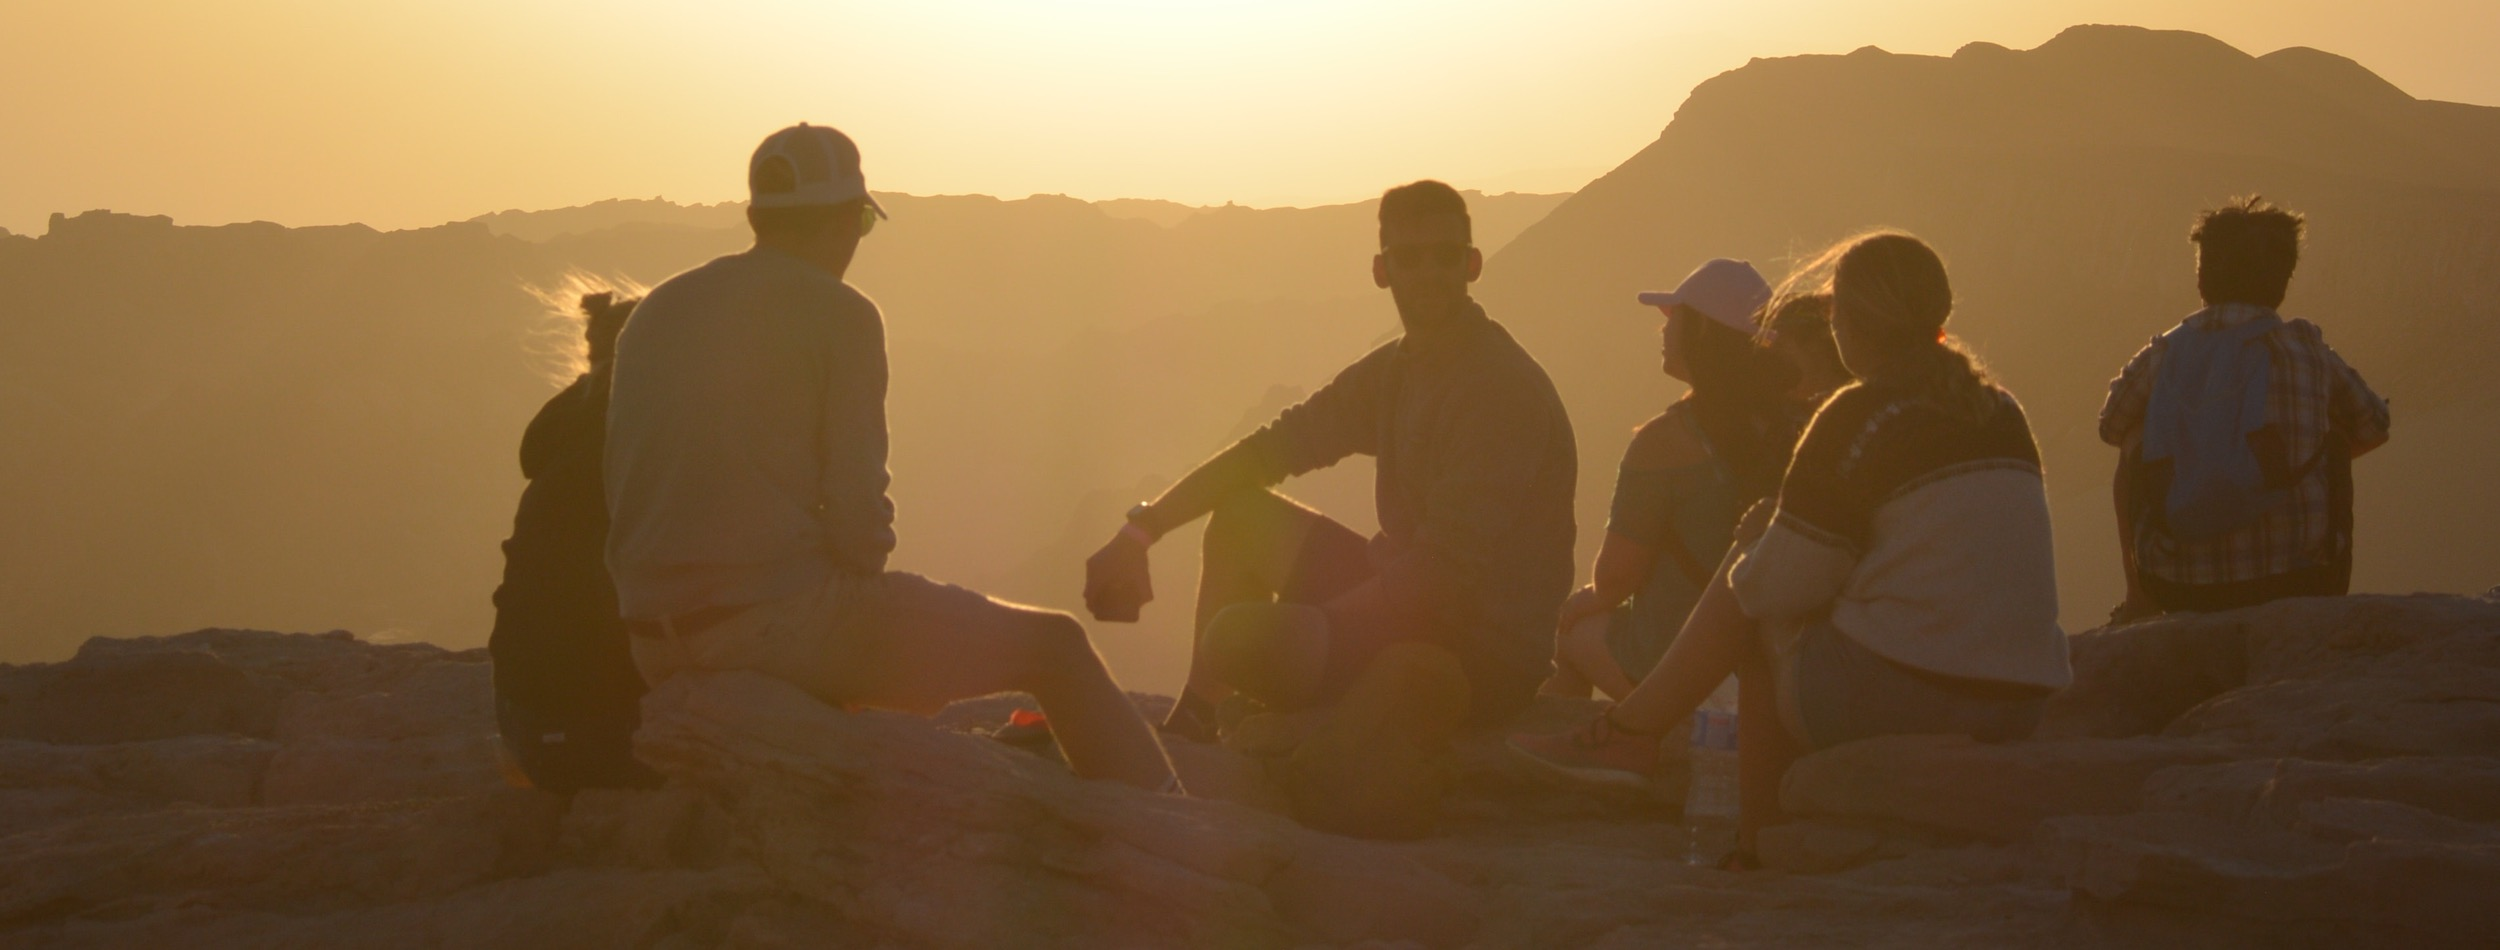 Group of people at sunset